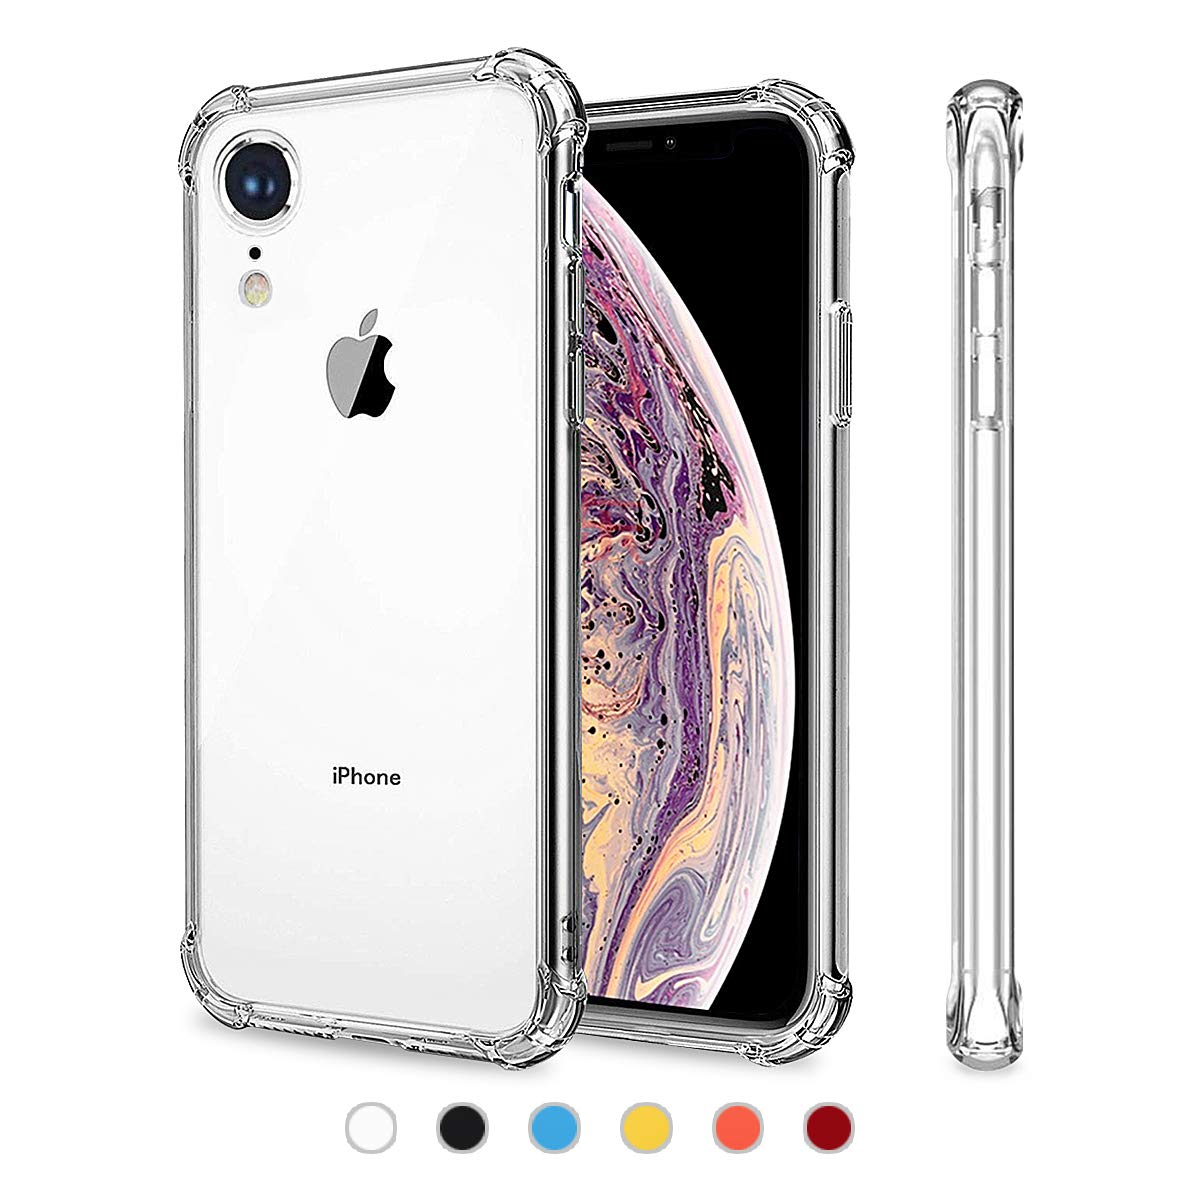 YOPECON for iPhone XR Cases - iPhone xr Clear case 6.1 Inch Premium Soft TPU Gel Ultra-Thin [Slim Fit] - Shock Absorption Cover and Clear case for iPhone XR